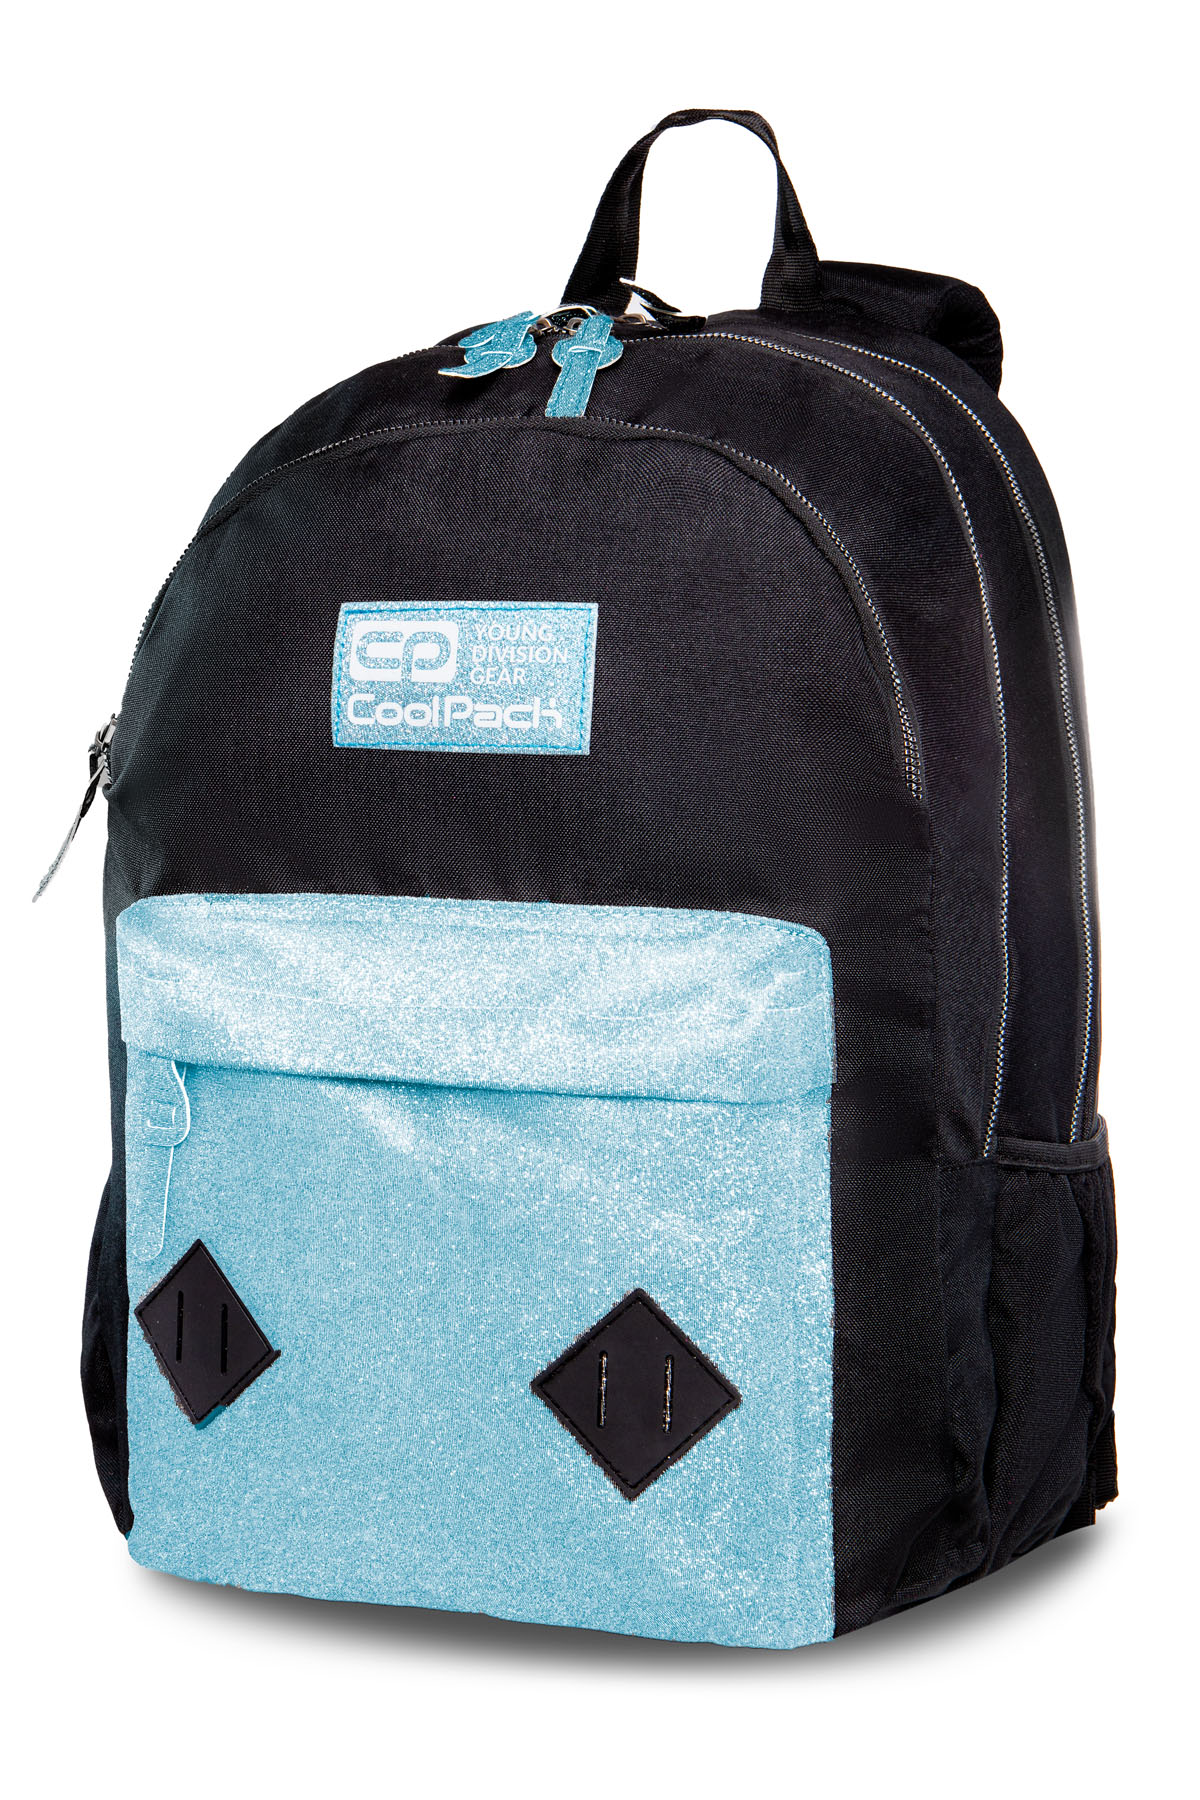 Coolpack - hippie - youth backpack - blue glitter